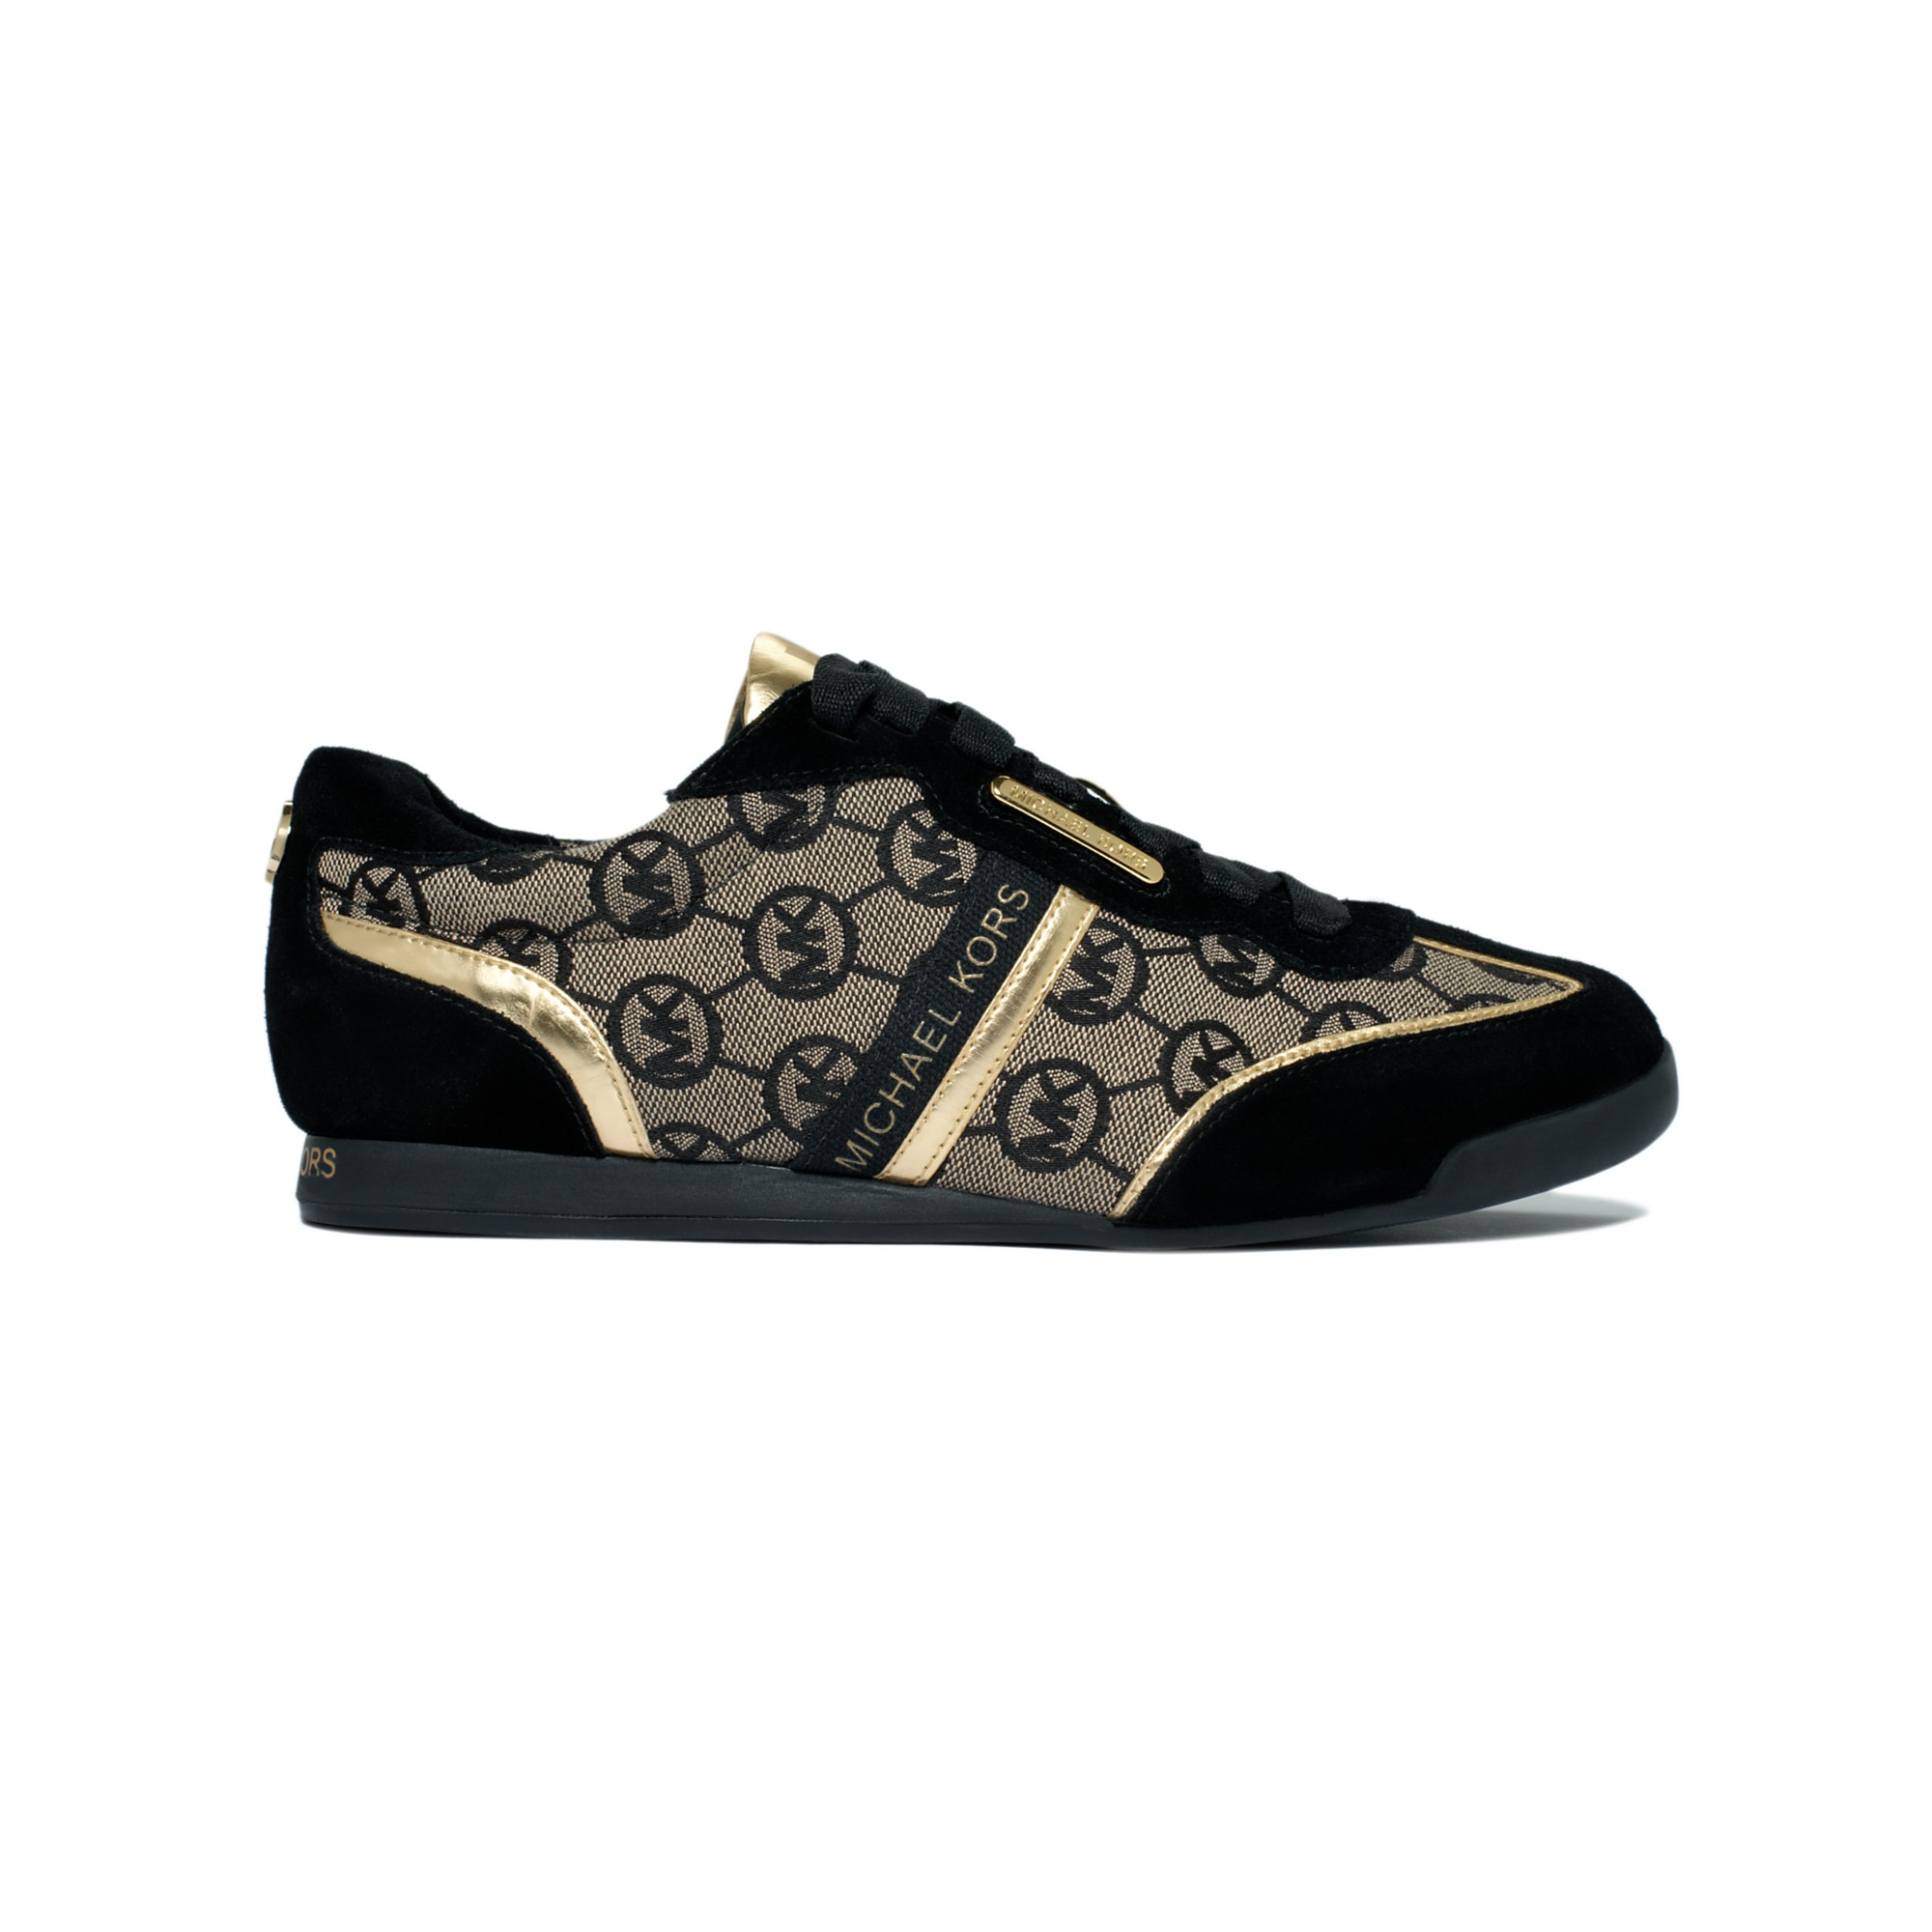 Michael Kors Womens Shoes Sneakers Car Interior Design